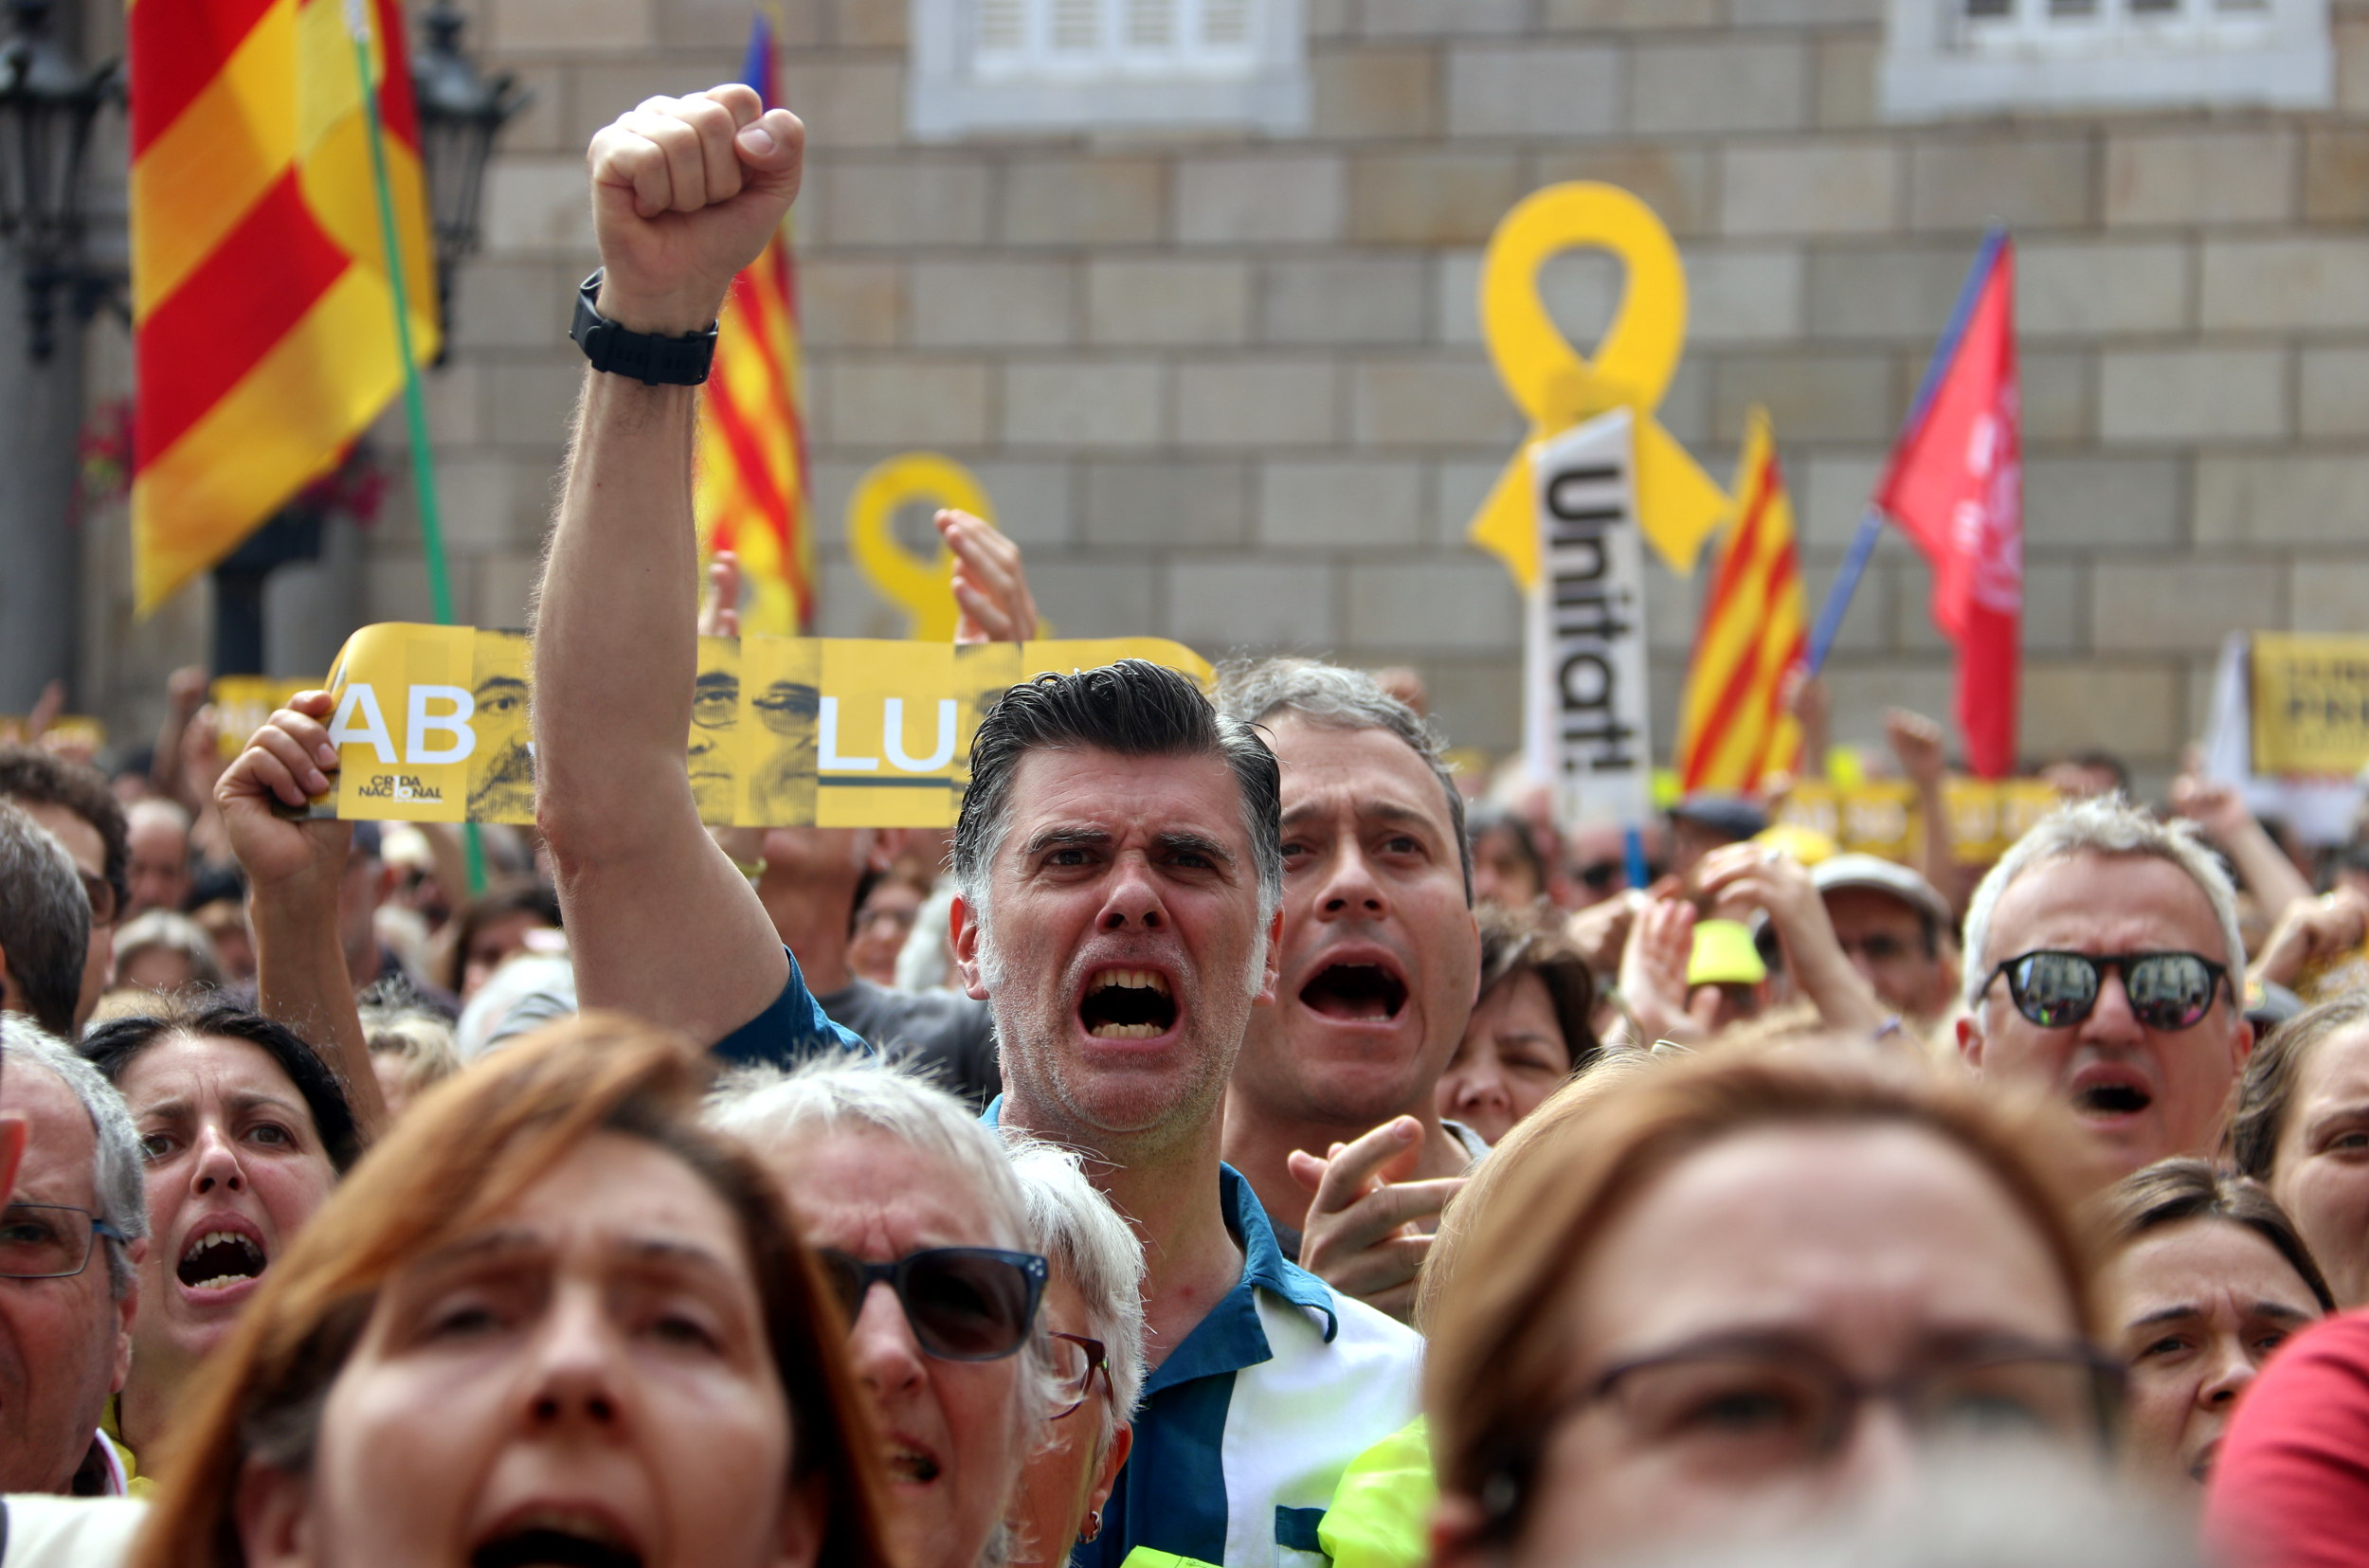 Pro-independence supporters outside of the Barcelona city council (by Pau Cortina)